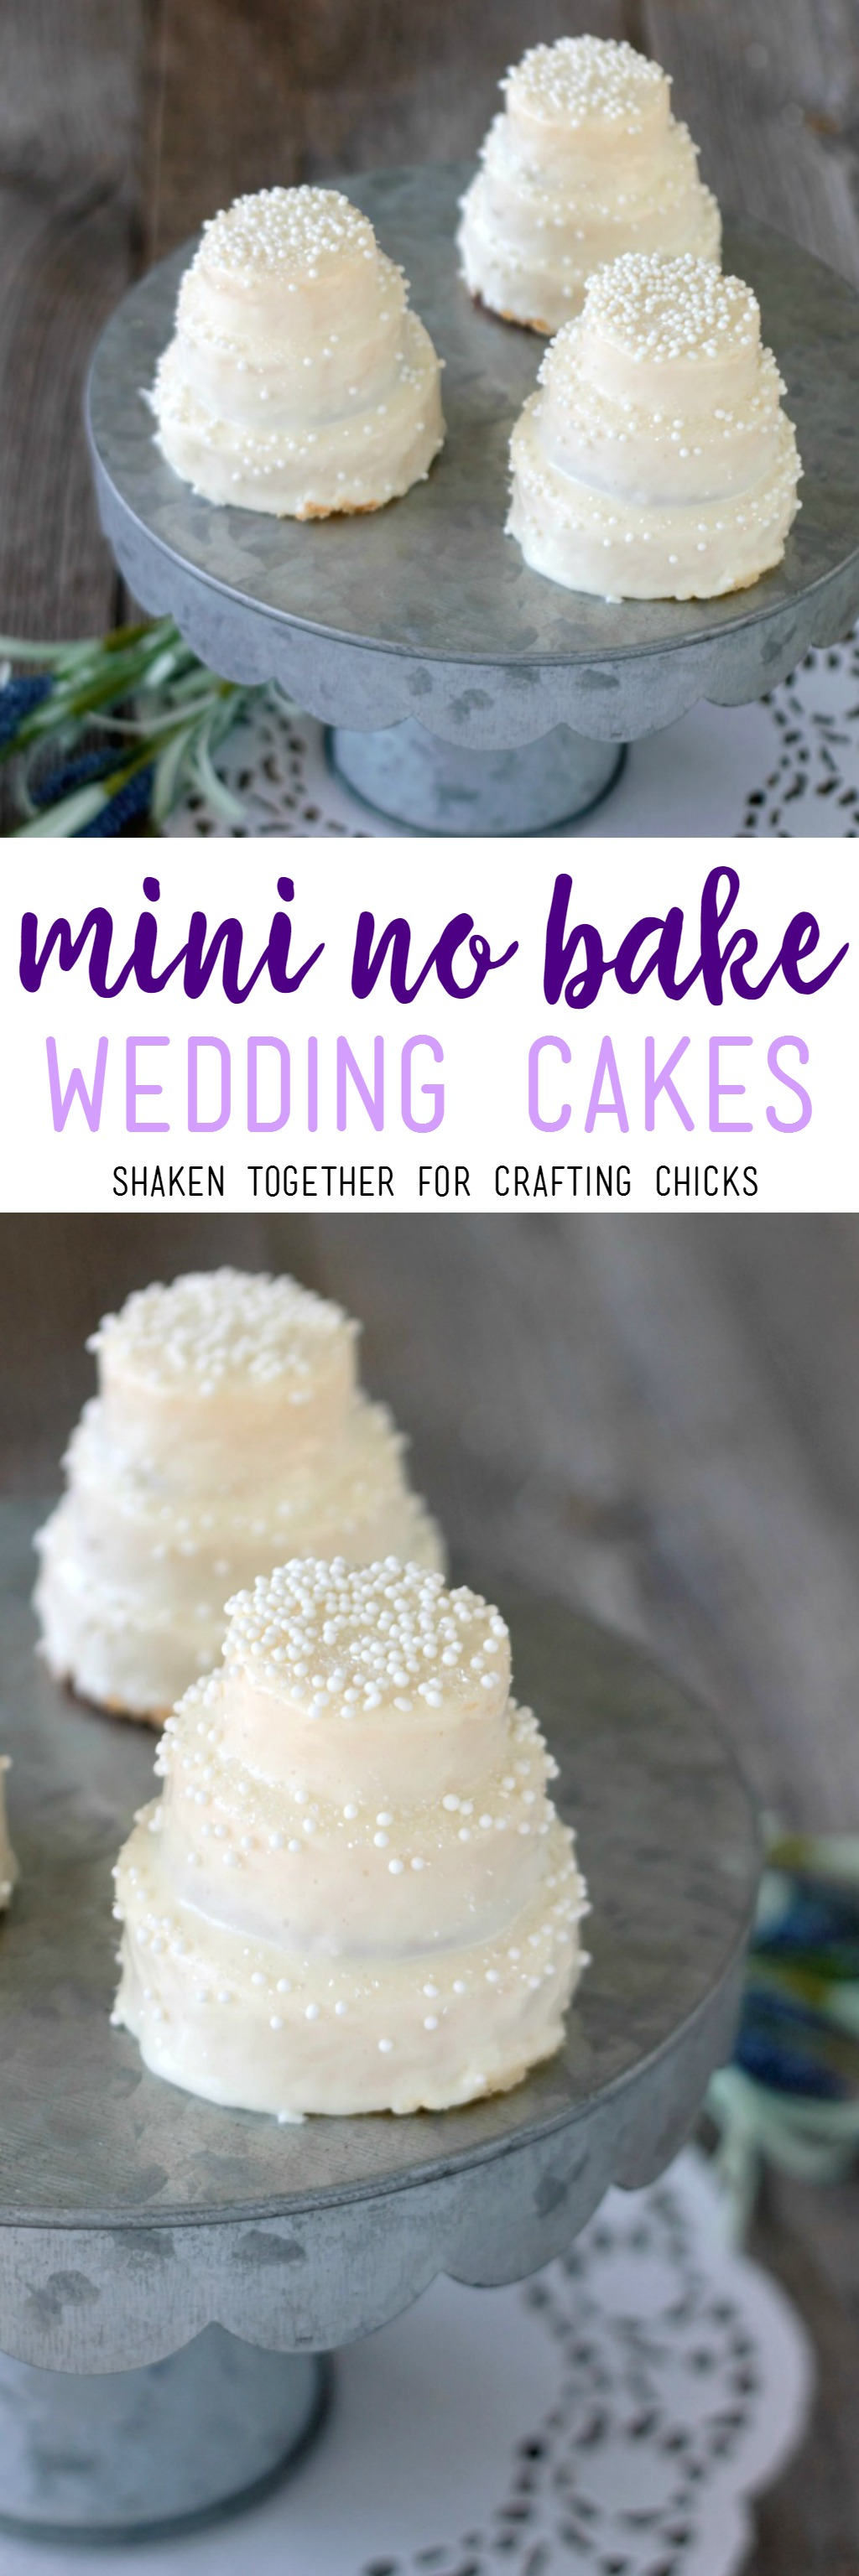 Mini No Bake Wedding Cakes - these sweet teeny tiered treats are perfect for a bridal shower, rehearsal dinner or wedding favor!